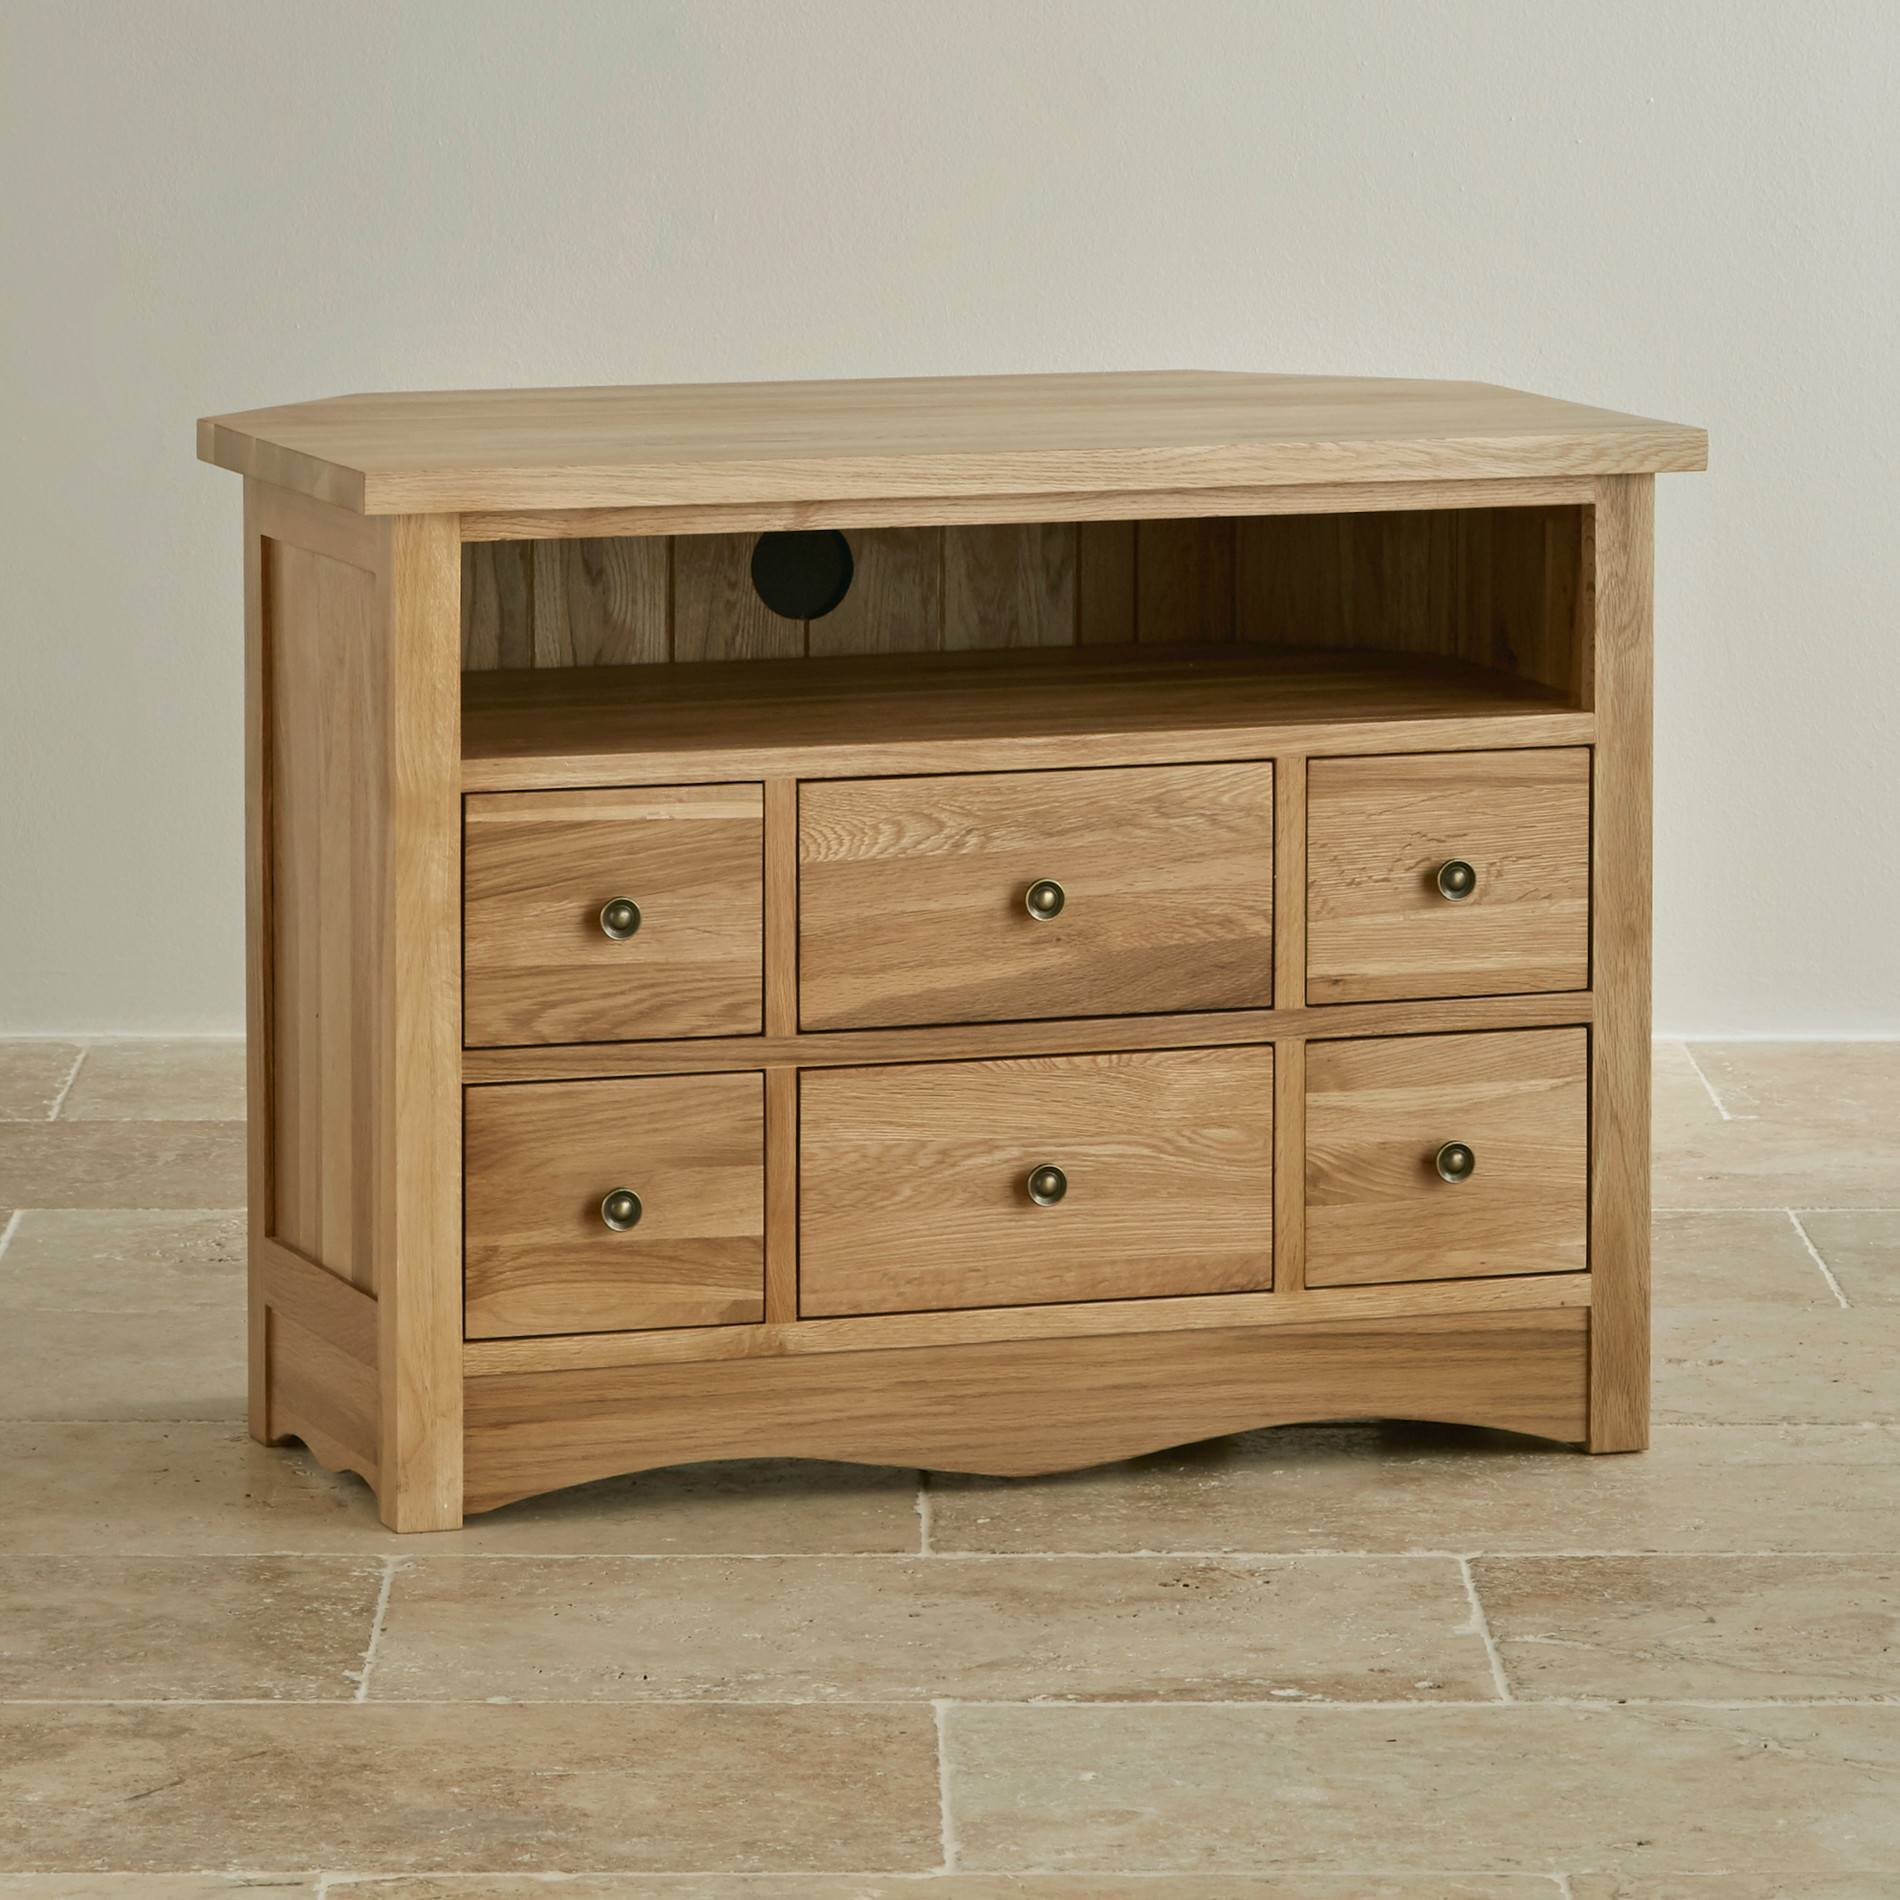 Cairo Corner Tv Cabinet In Natural Solid Oak | Oak Furniture Land Pertaining To Corner Tv Cabinets (View 3 of 15)